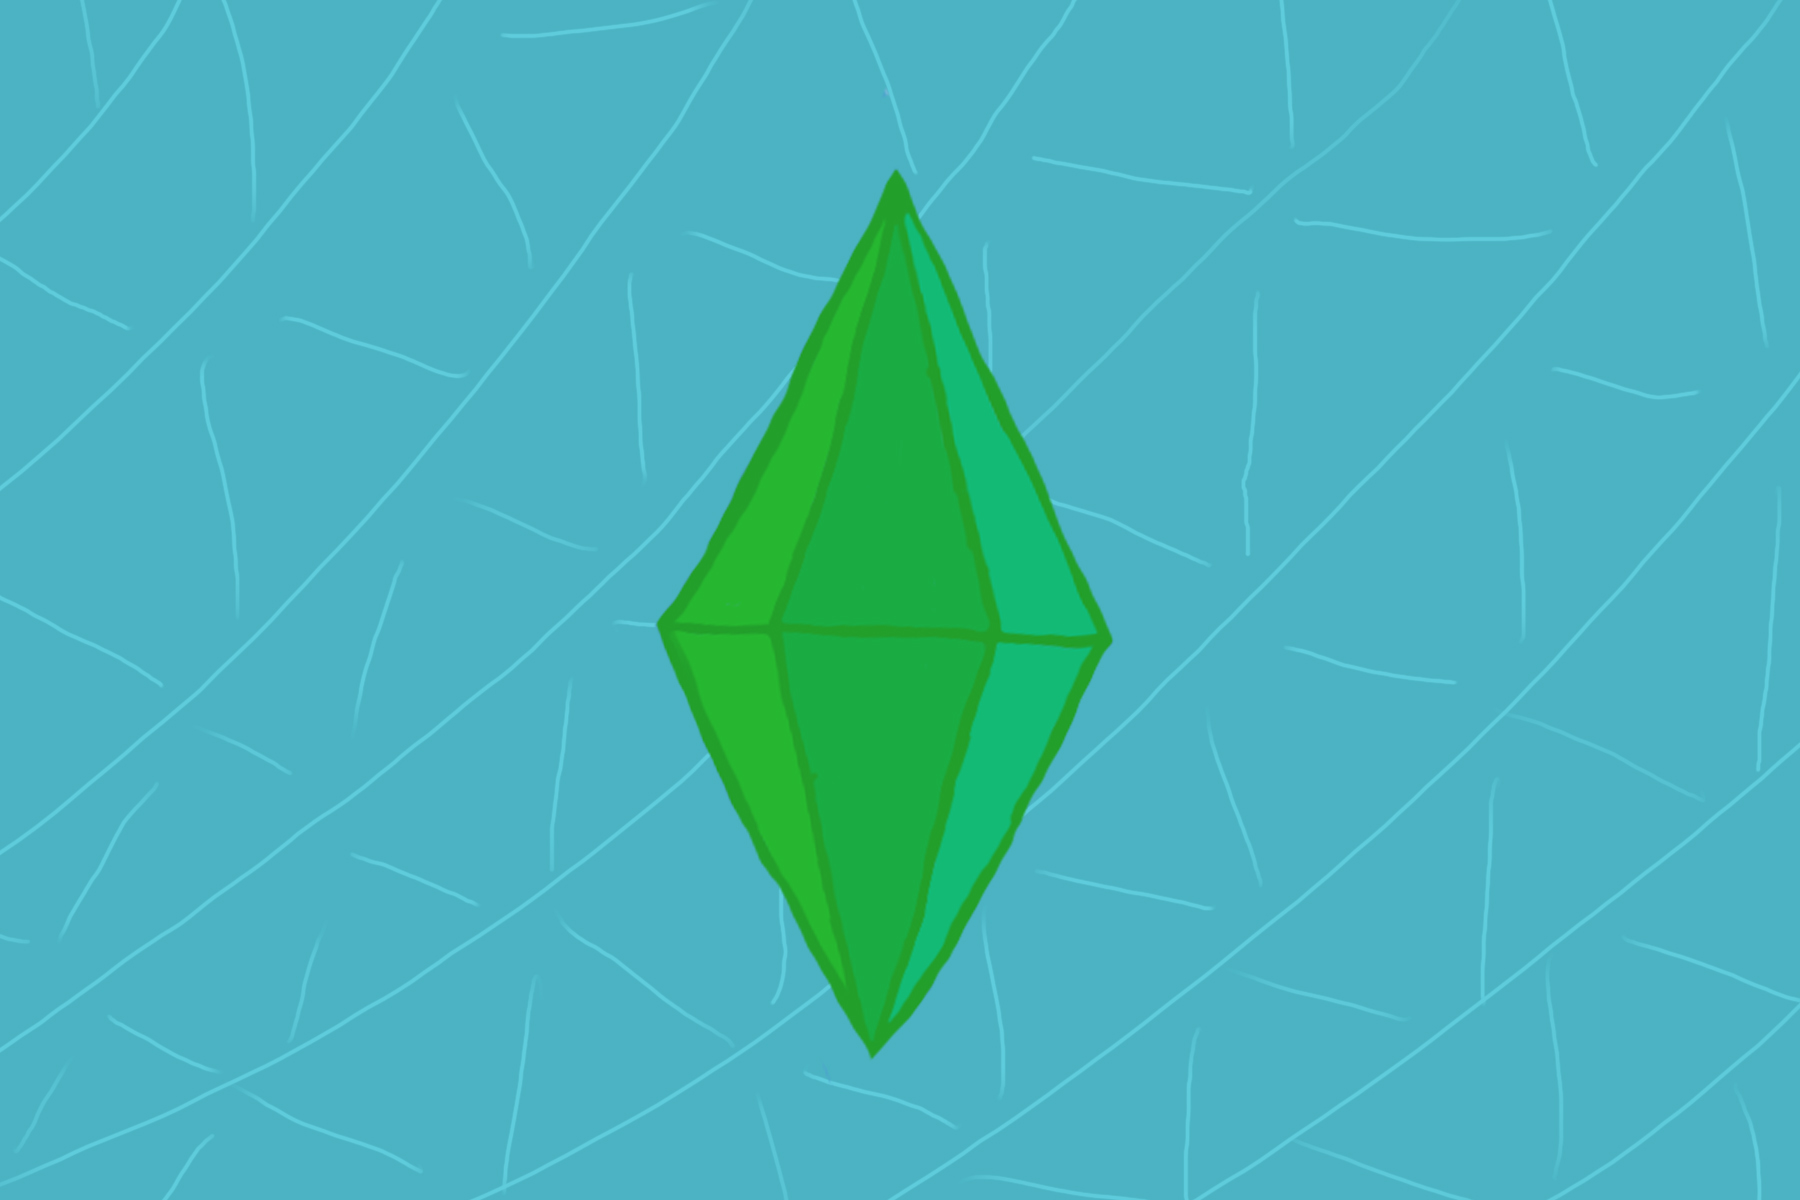 Illustration of plumbob from Tiny Living, a Sims 4 expansion